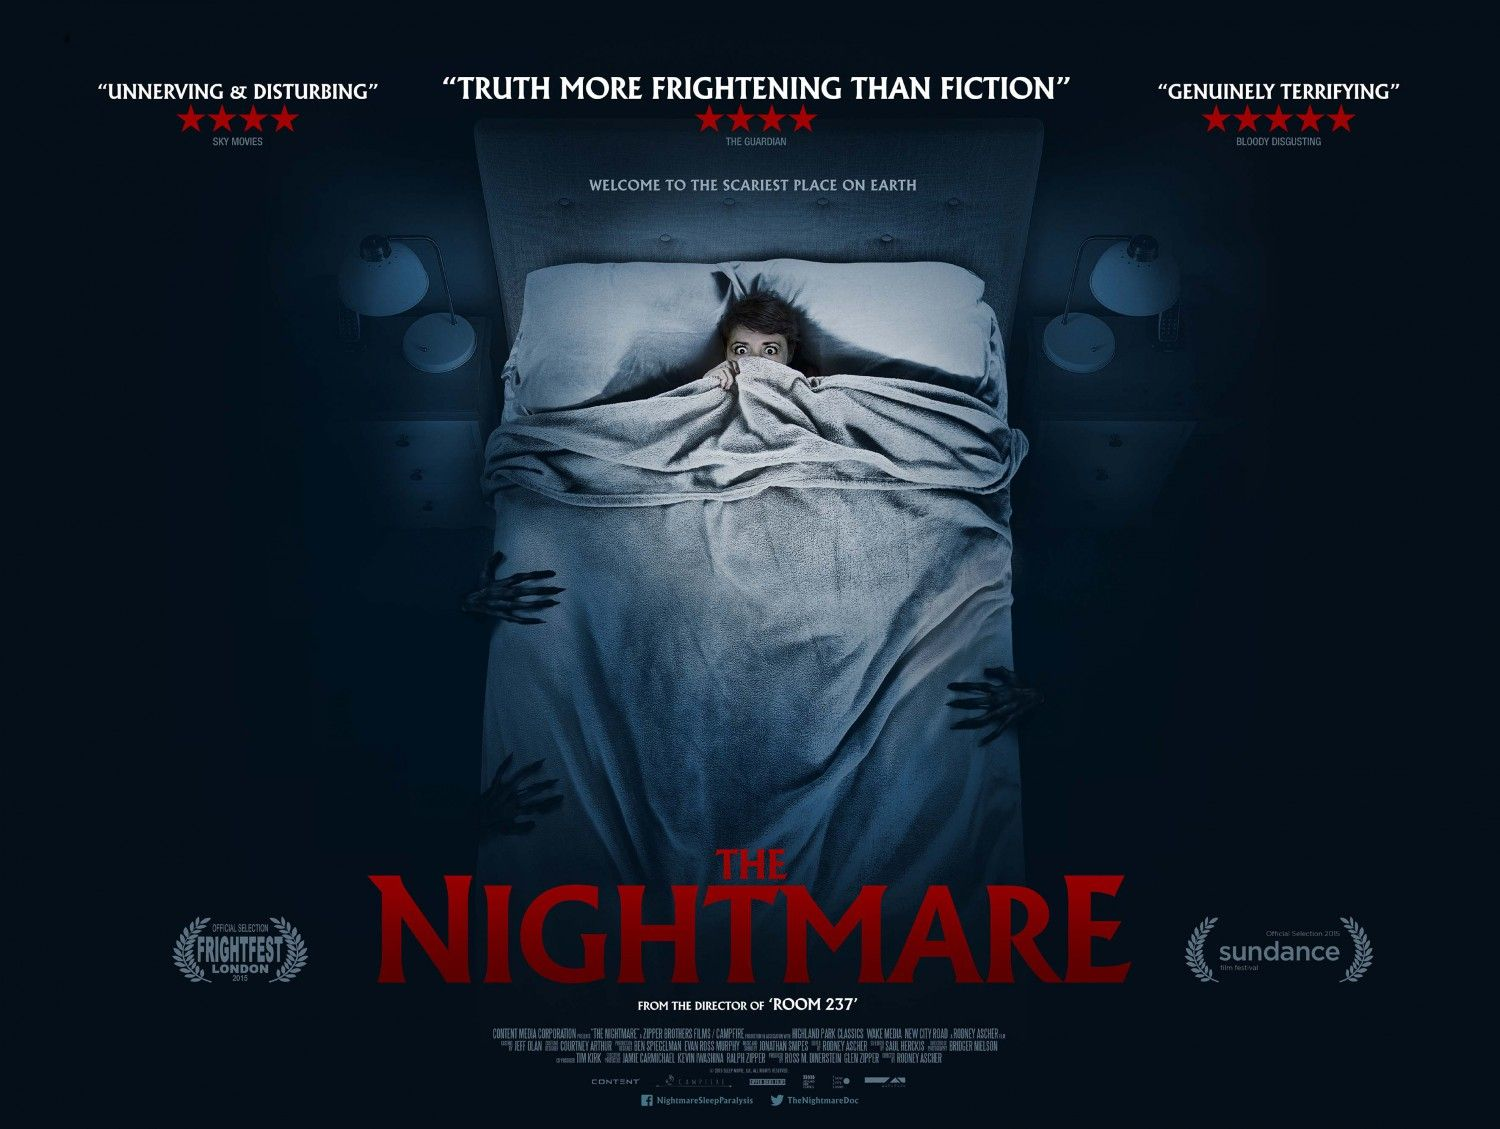 The Nightmare Extra Large Movie Poster Image Internet Movie Poster Awards Gallery Pride And Prejudice And Zombies New Movie Posters Documentaries The sleep demon is actually a hallucination linked to sleep paralysis, which occurs when a person is jolted awake in the middle of the rapid eye movement (rem) phase of sleep associated with dreaming. the nightmare extra large movie poster